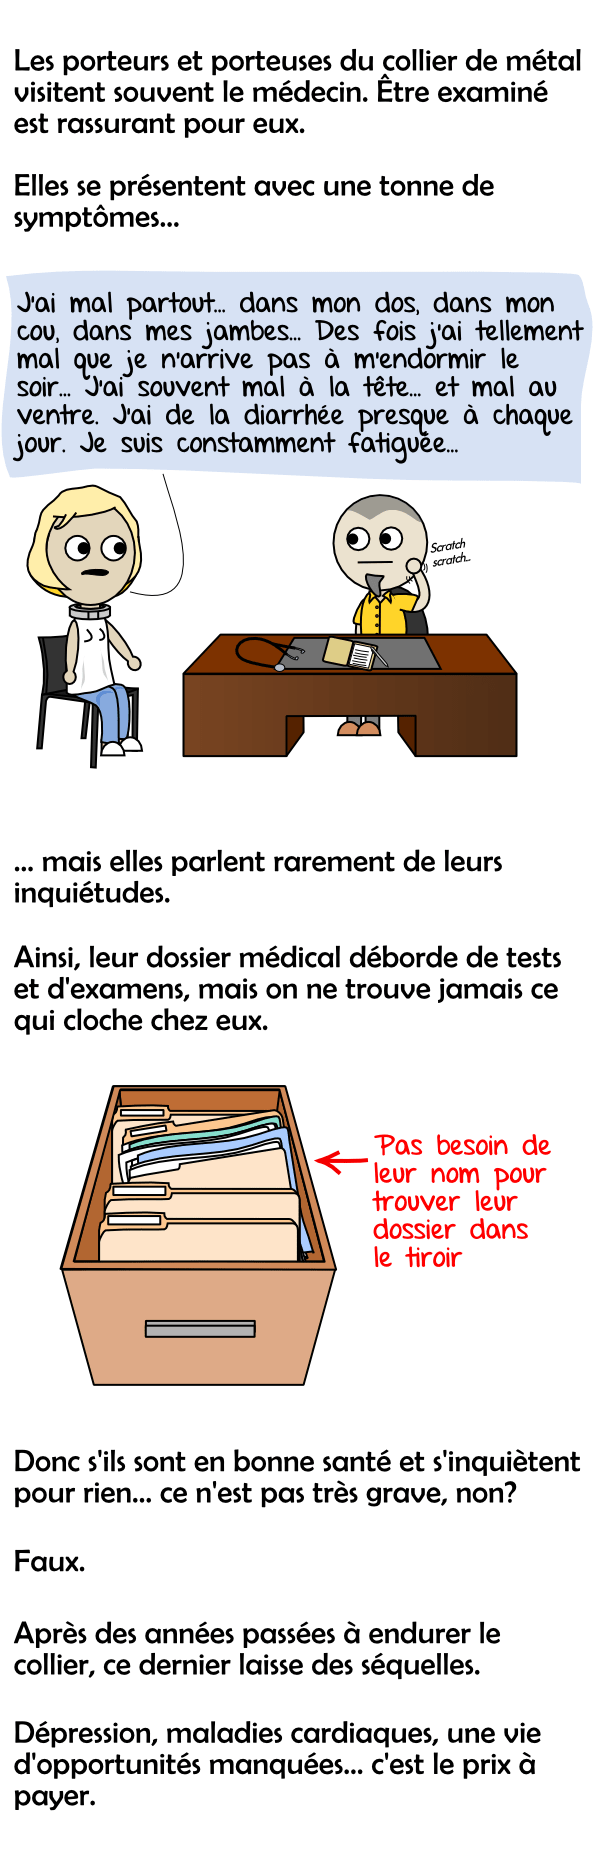 Symptômes multiples chez le médecin et dossiers épais